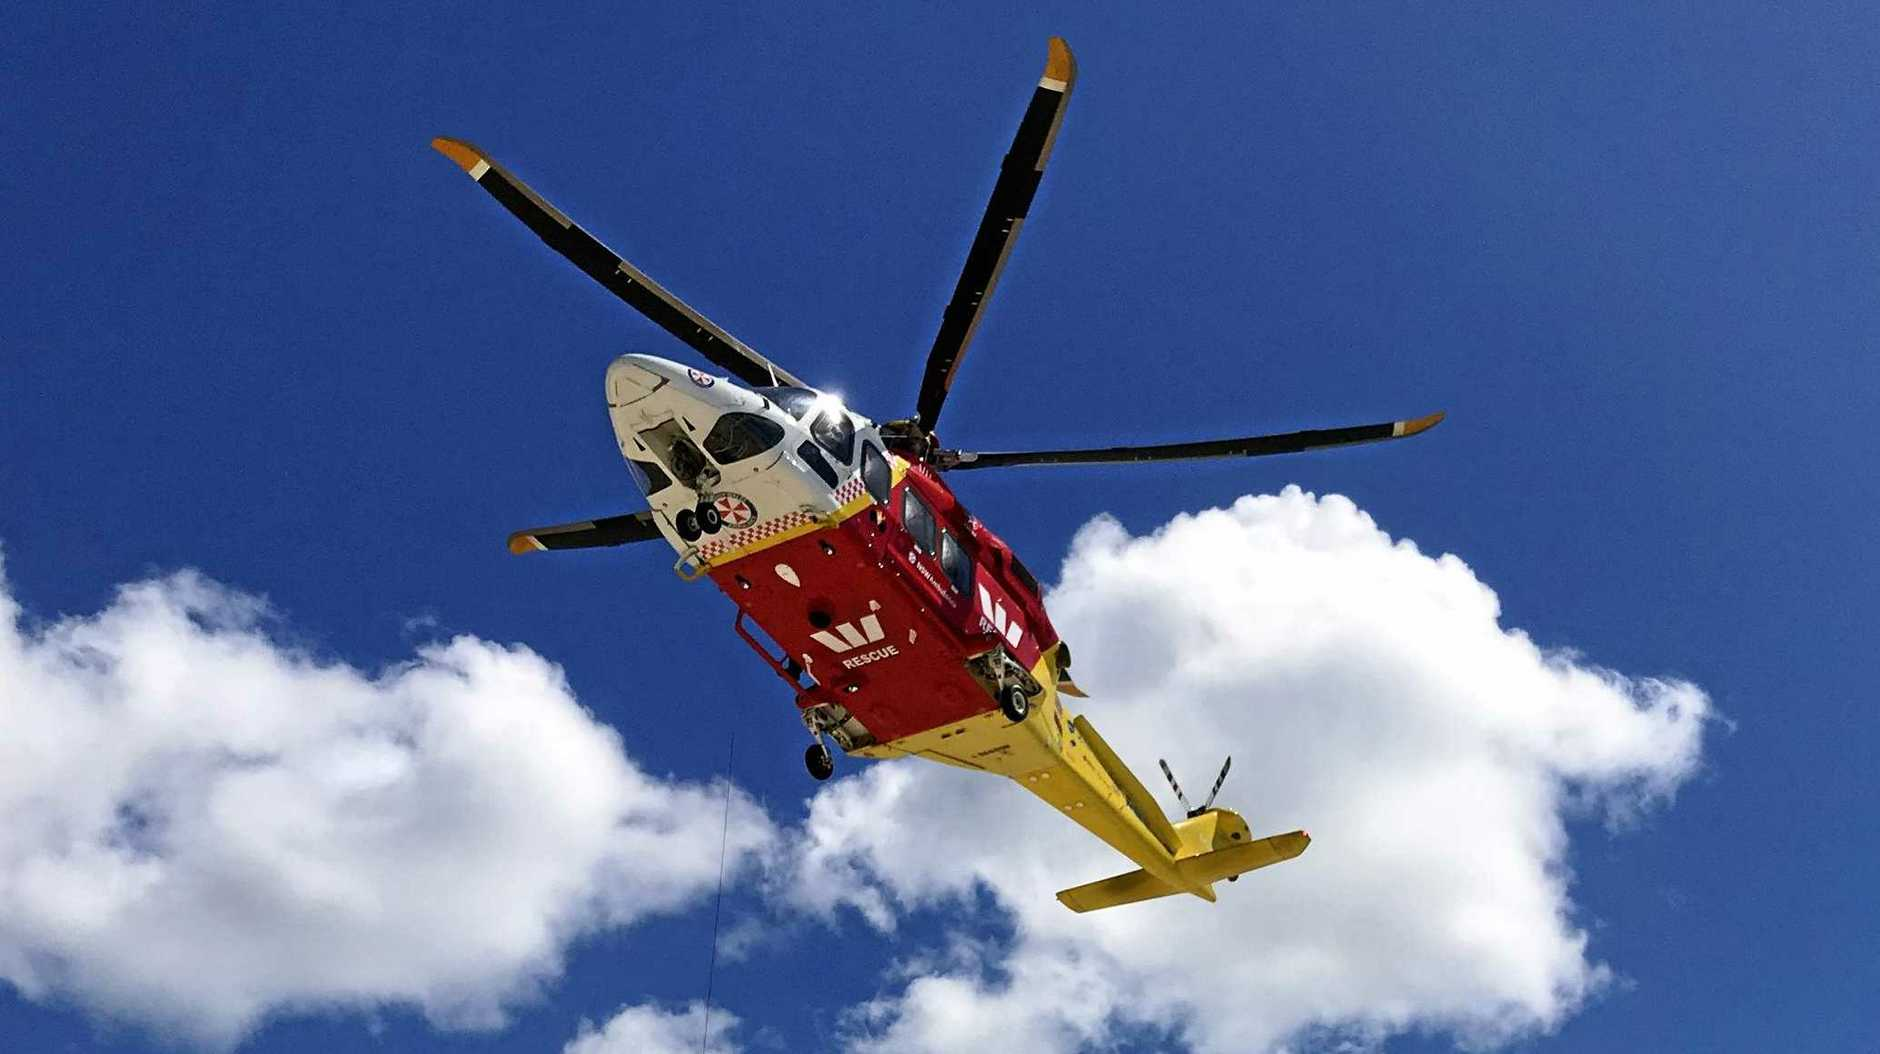 Emergency services were called to Byron Bay this afternoon after reports that surfers were in trouble in the water.